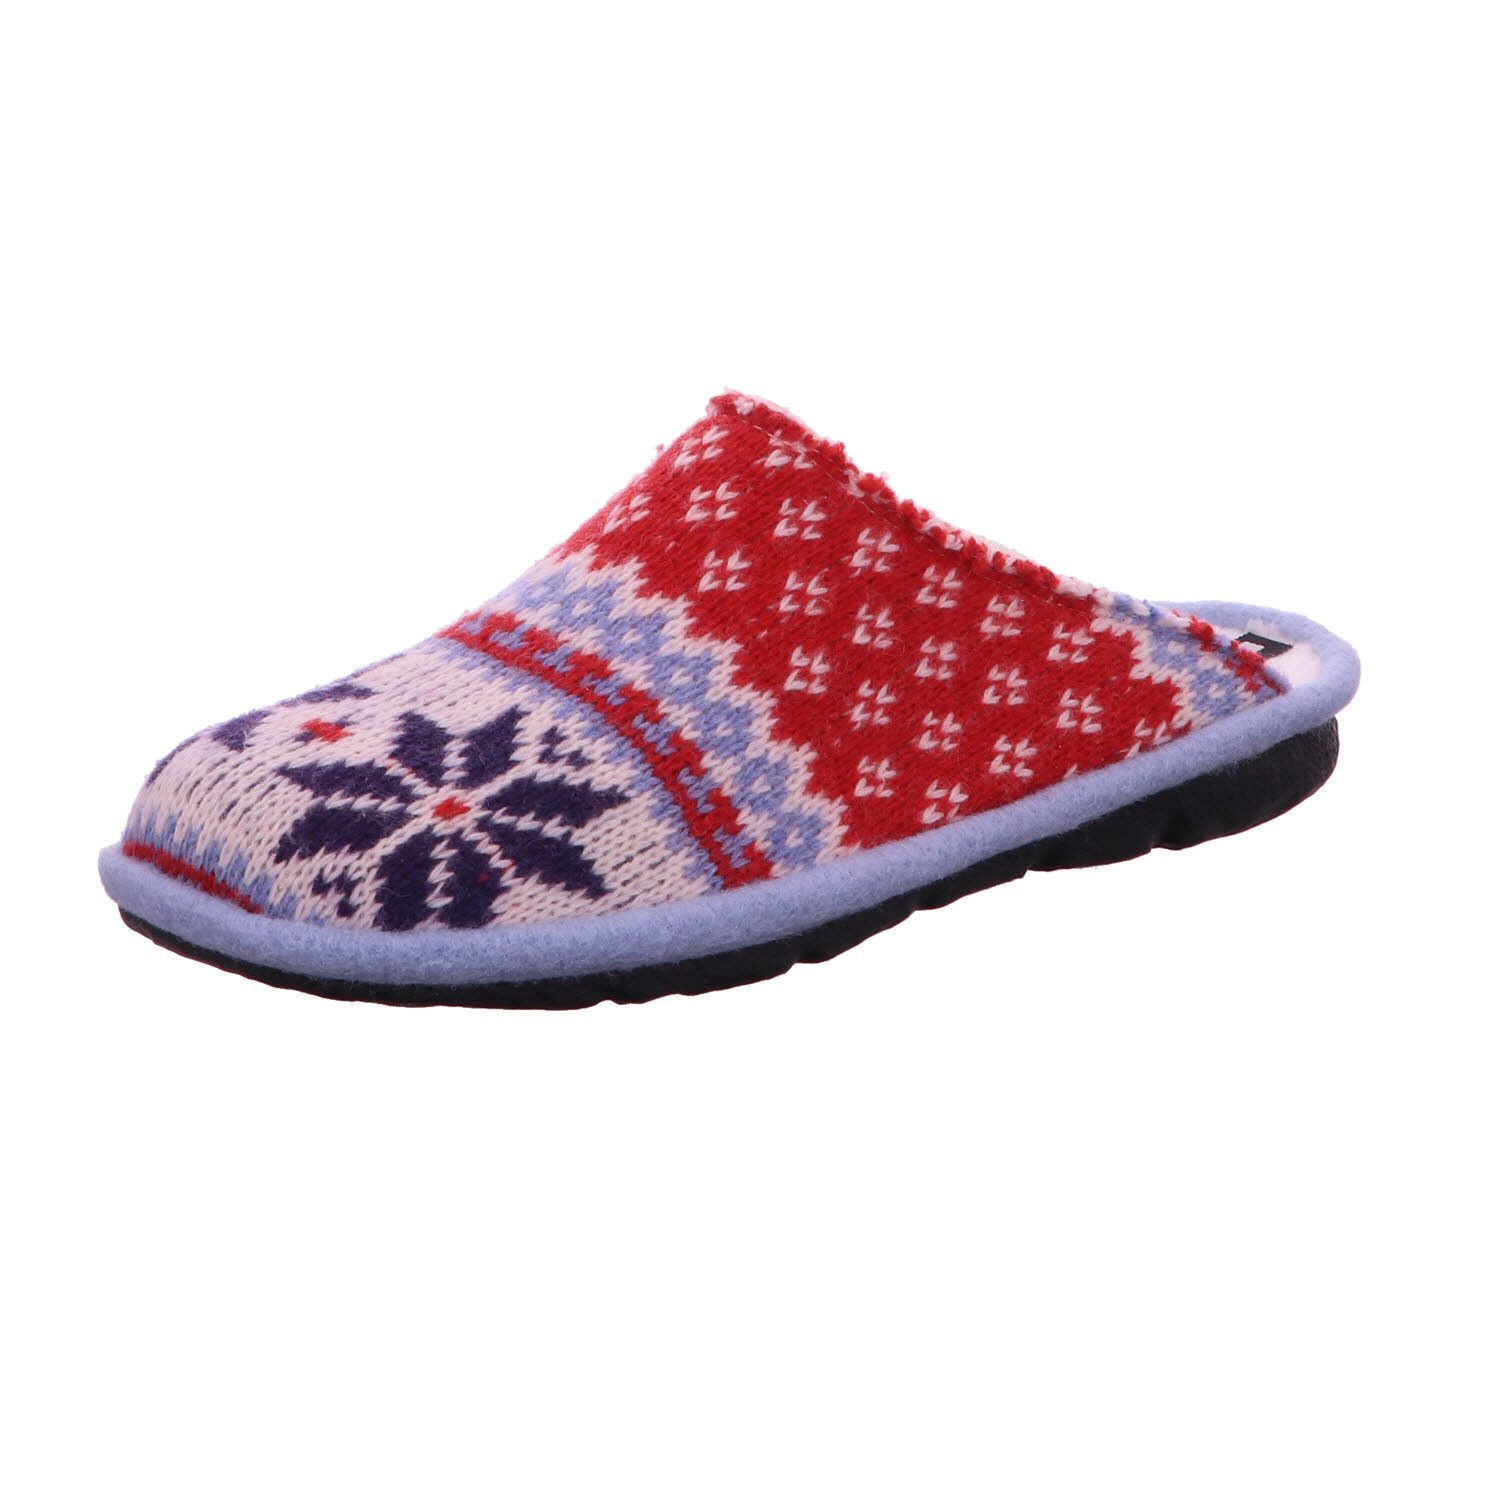 Romika Mikado 67 A Rouge/multicolore chaussons Rouge Mikado B00ZP324CO/multicolore a13cf7f - deadsea.space